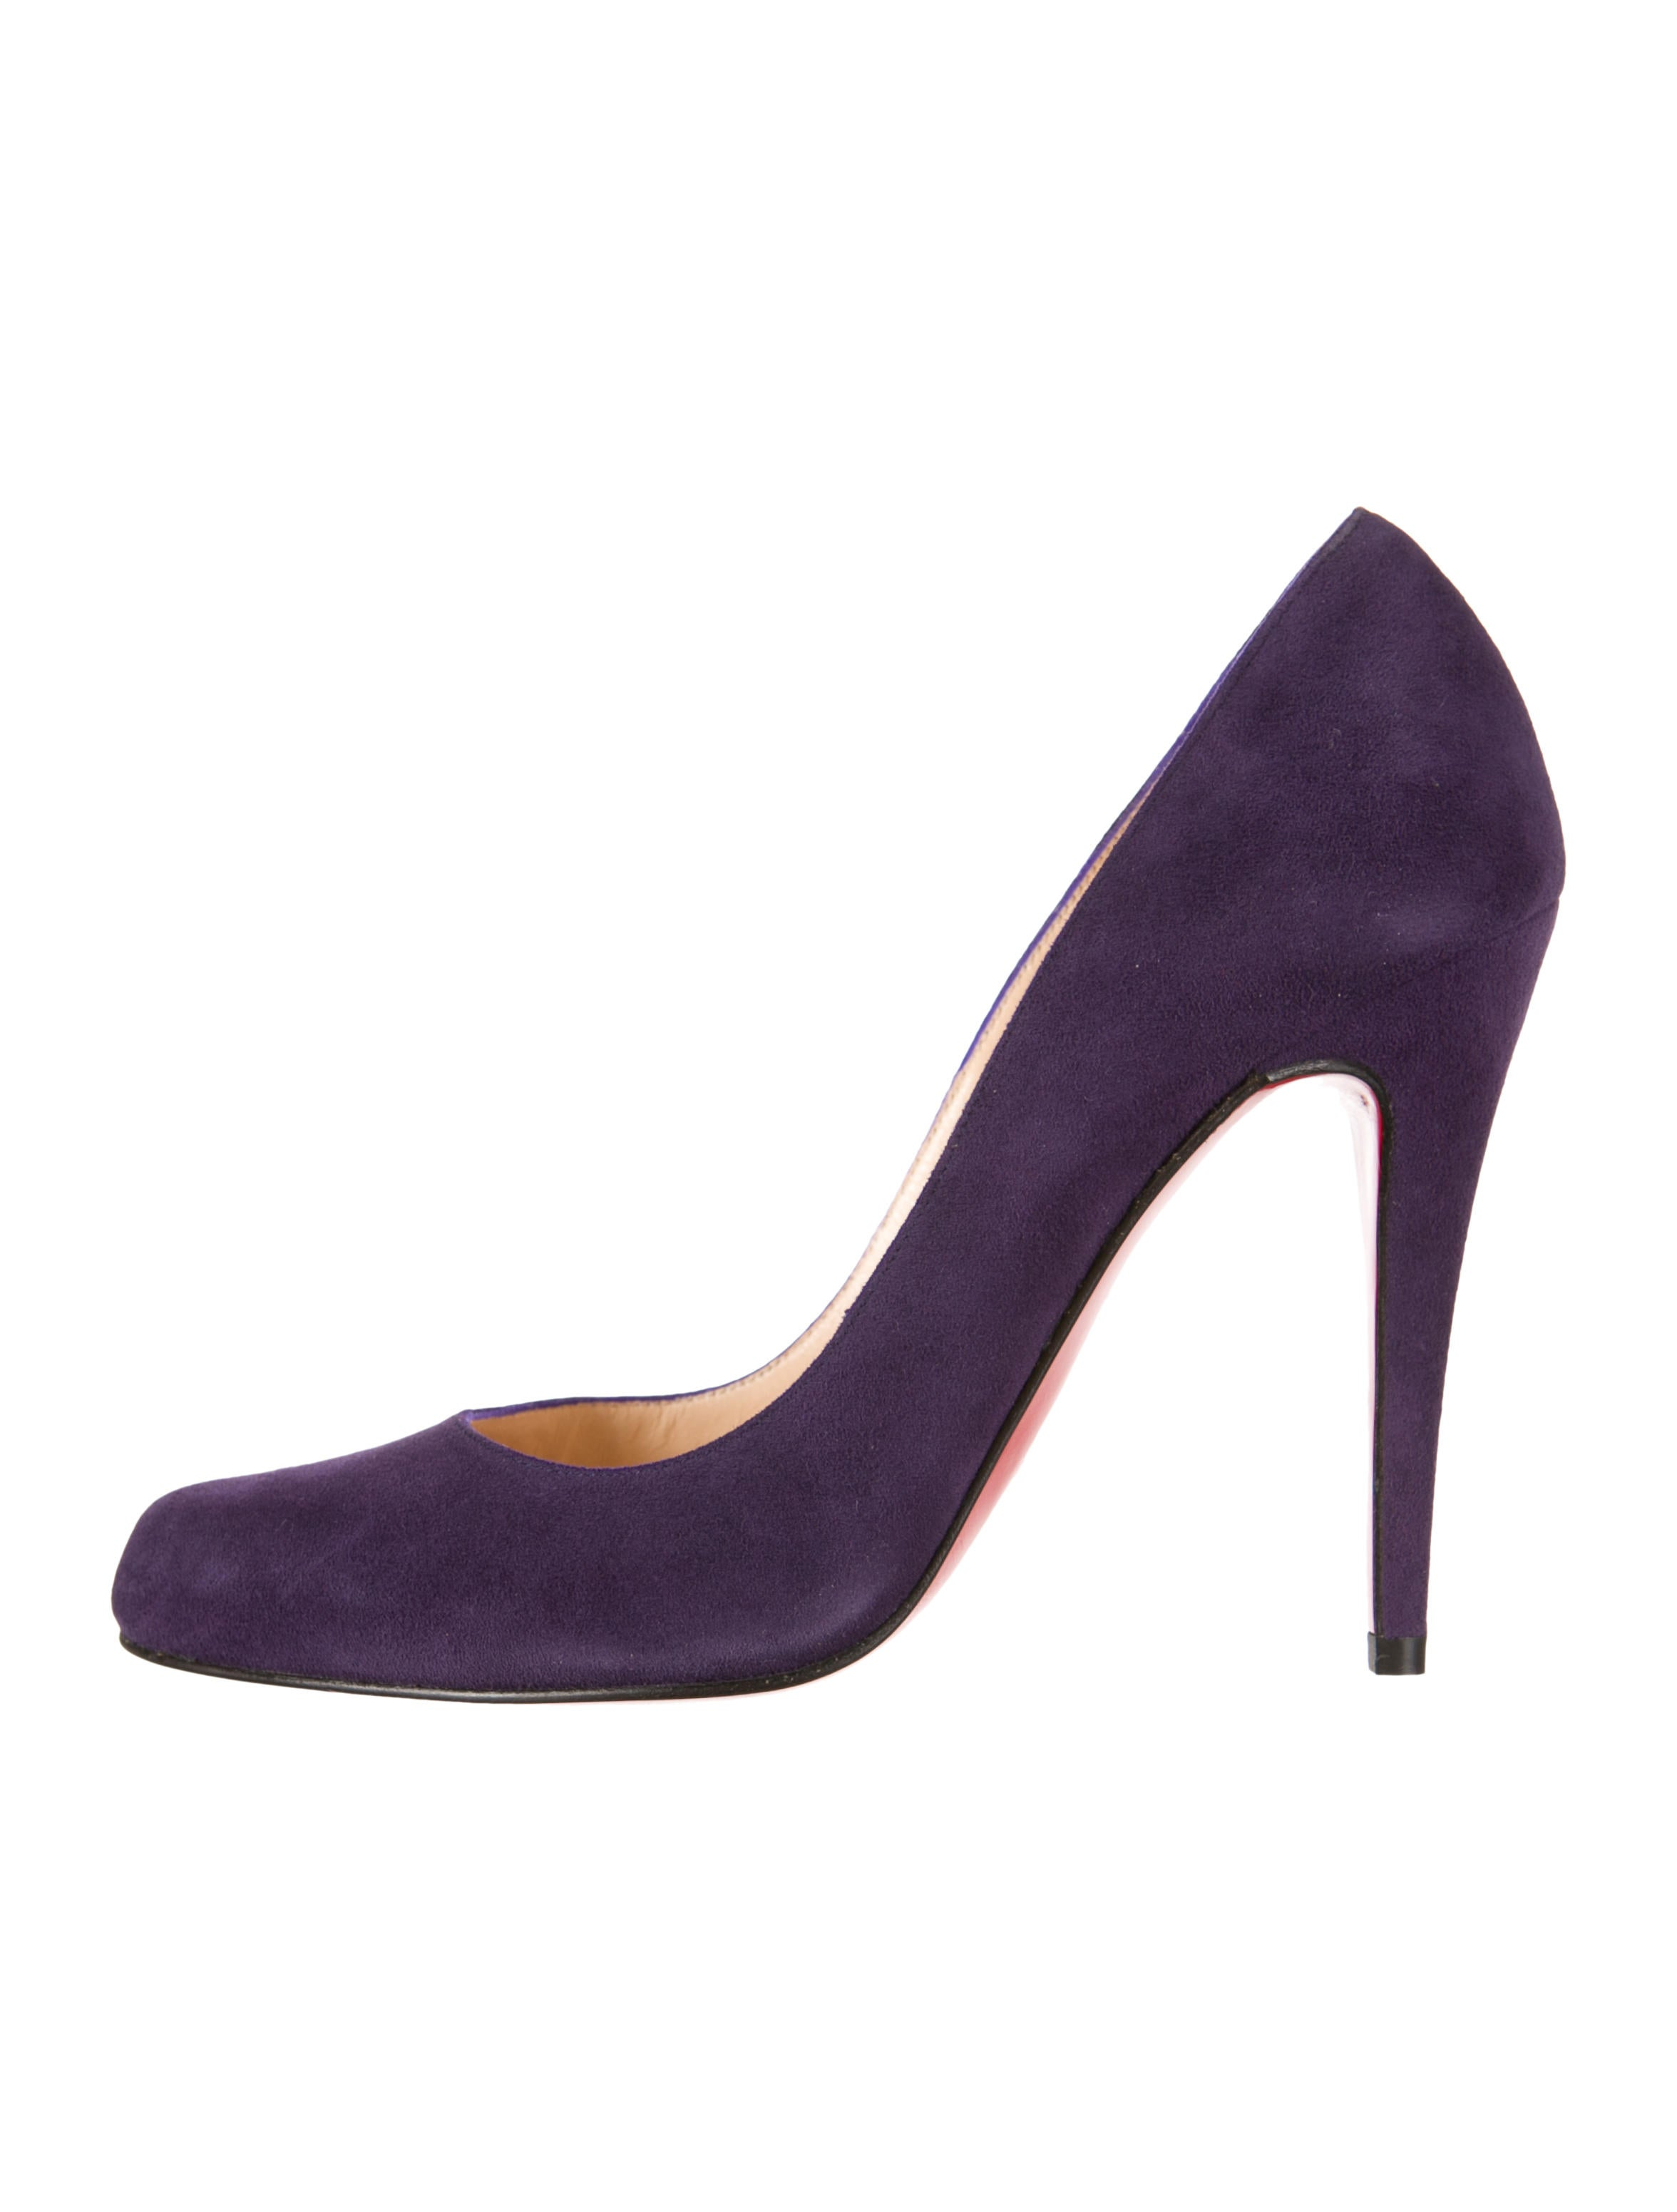 what are red bottom shoes for men - christian louboutin suede Decollete pumps Purple pointed toes ...